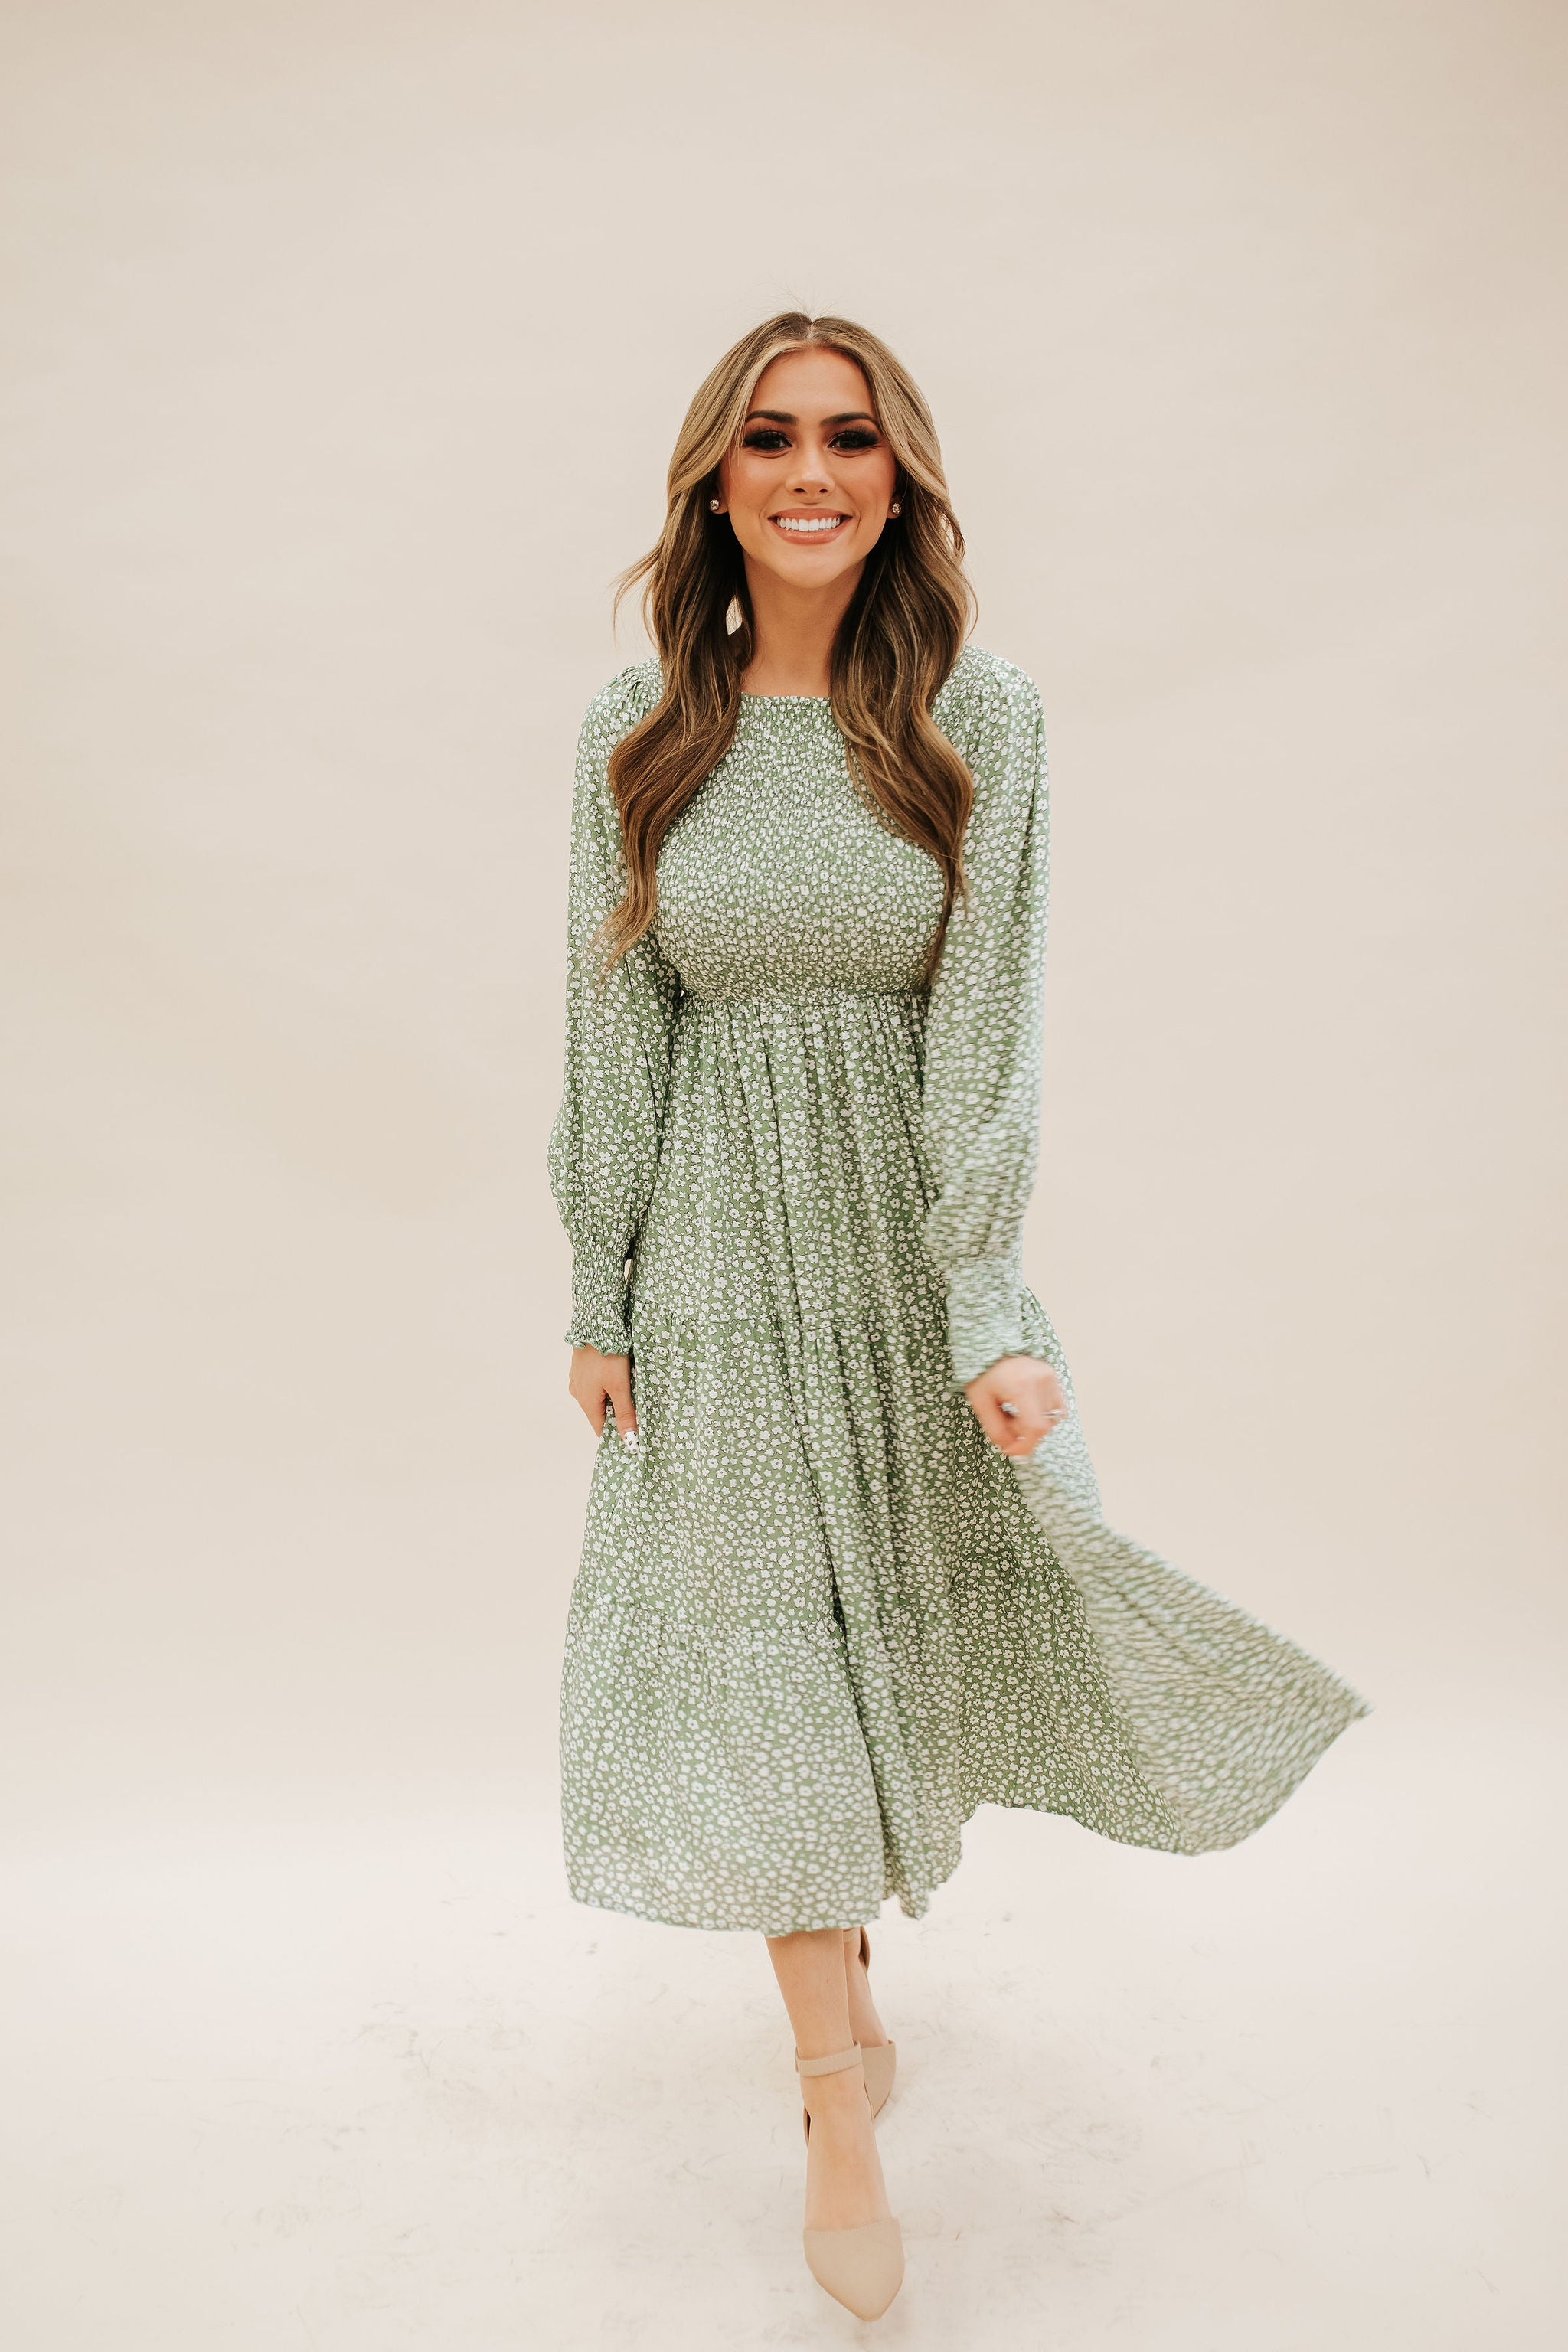 THE SEBASTIAN SMOCKED MIDI DRESS IN GREEN FLORAL